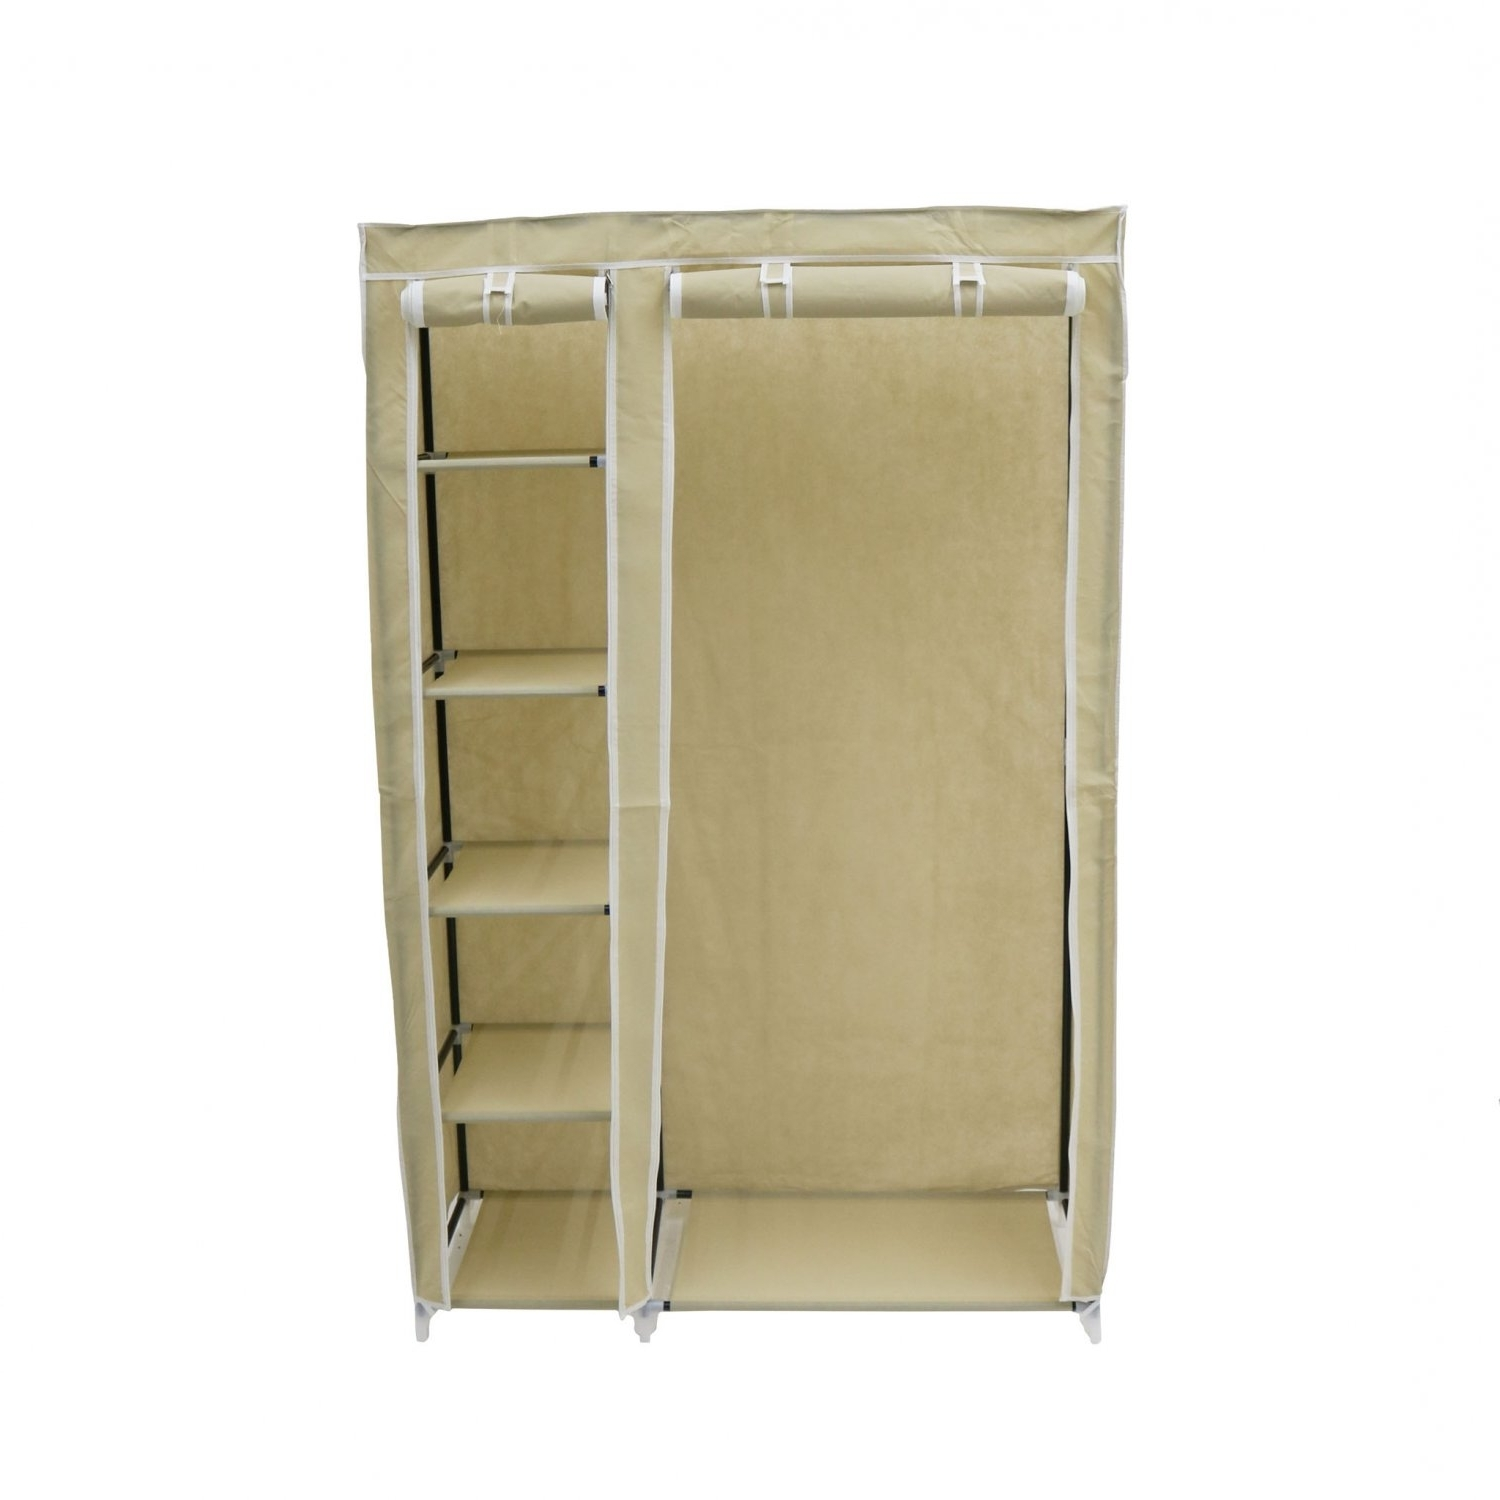 Preferred New! Double Cream Canvas Wardrobe Clothes Rail Hanging Storage Inside Double Black Covered Tidy Rail Wardrobes (View 13 of 15)